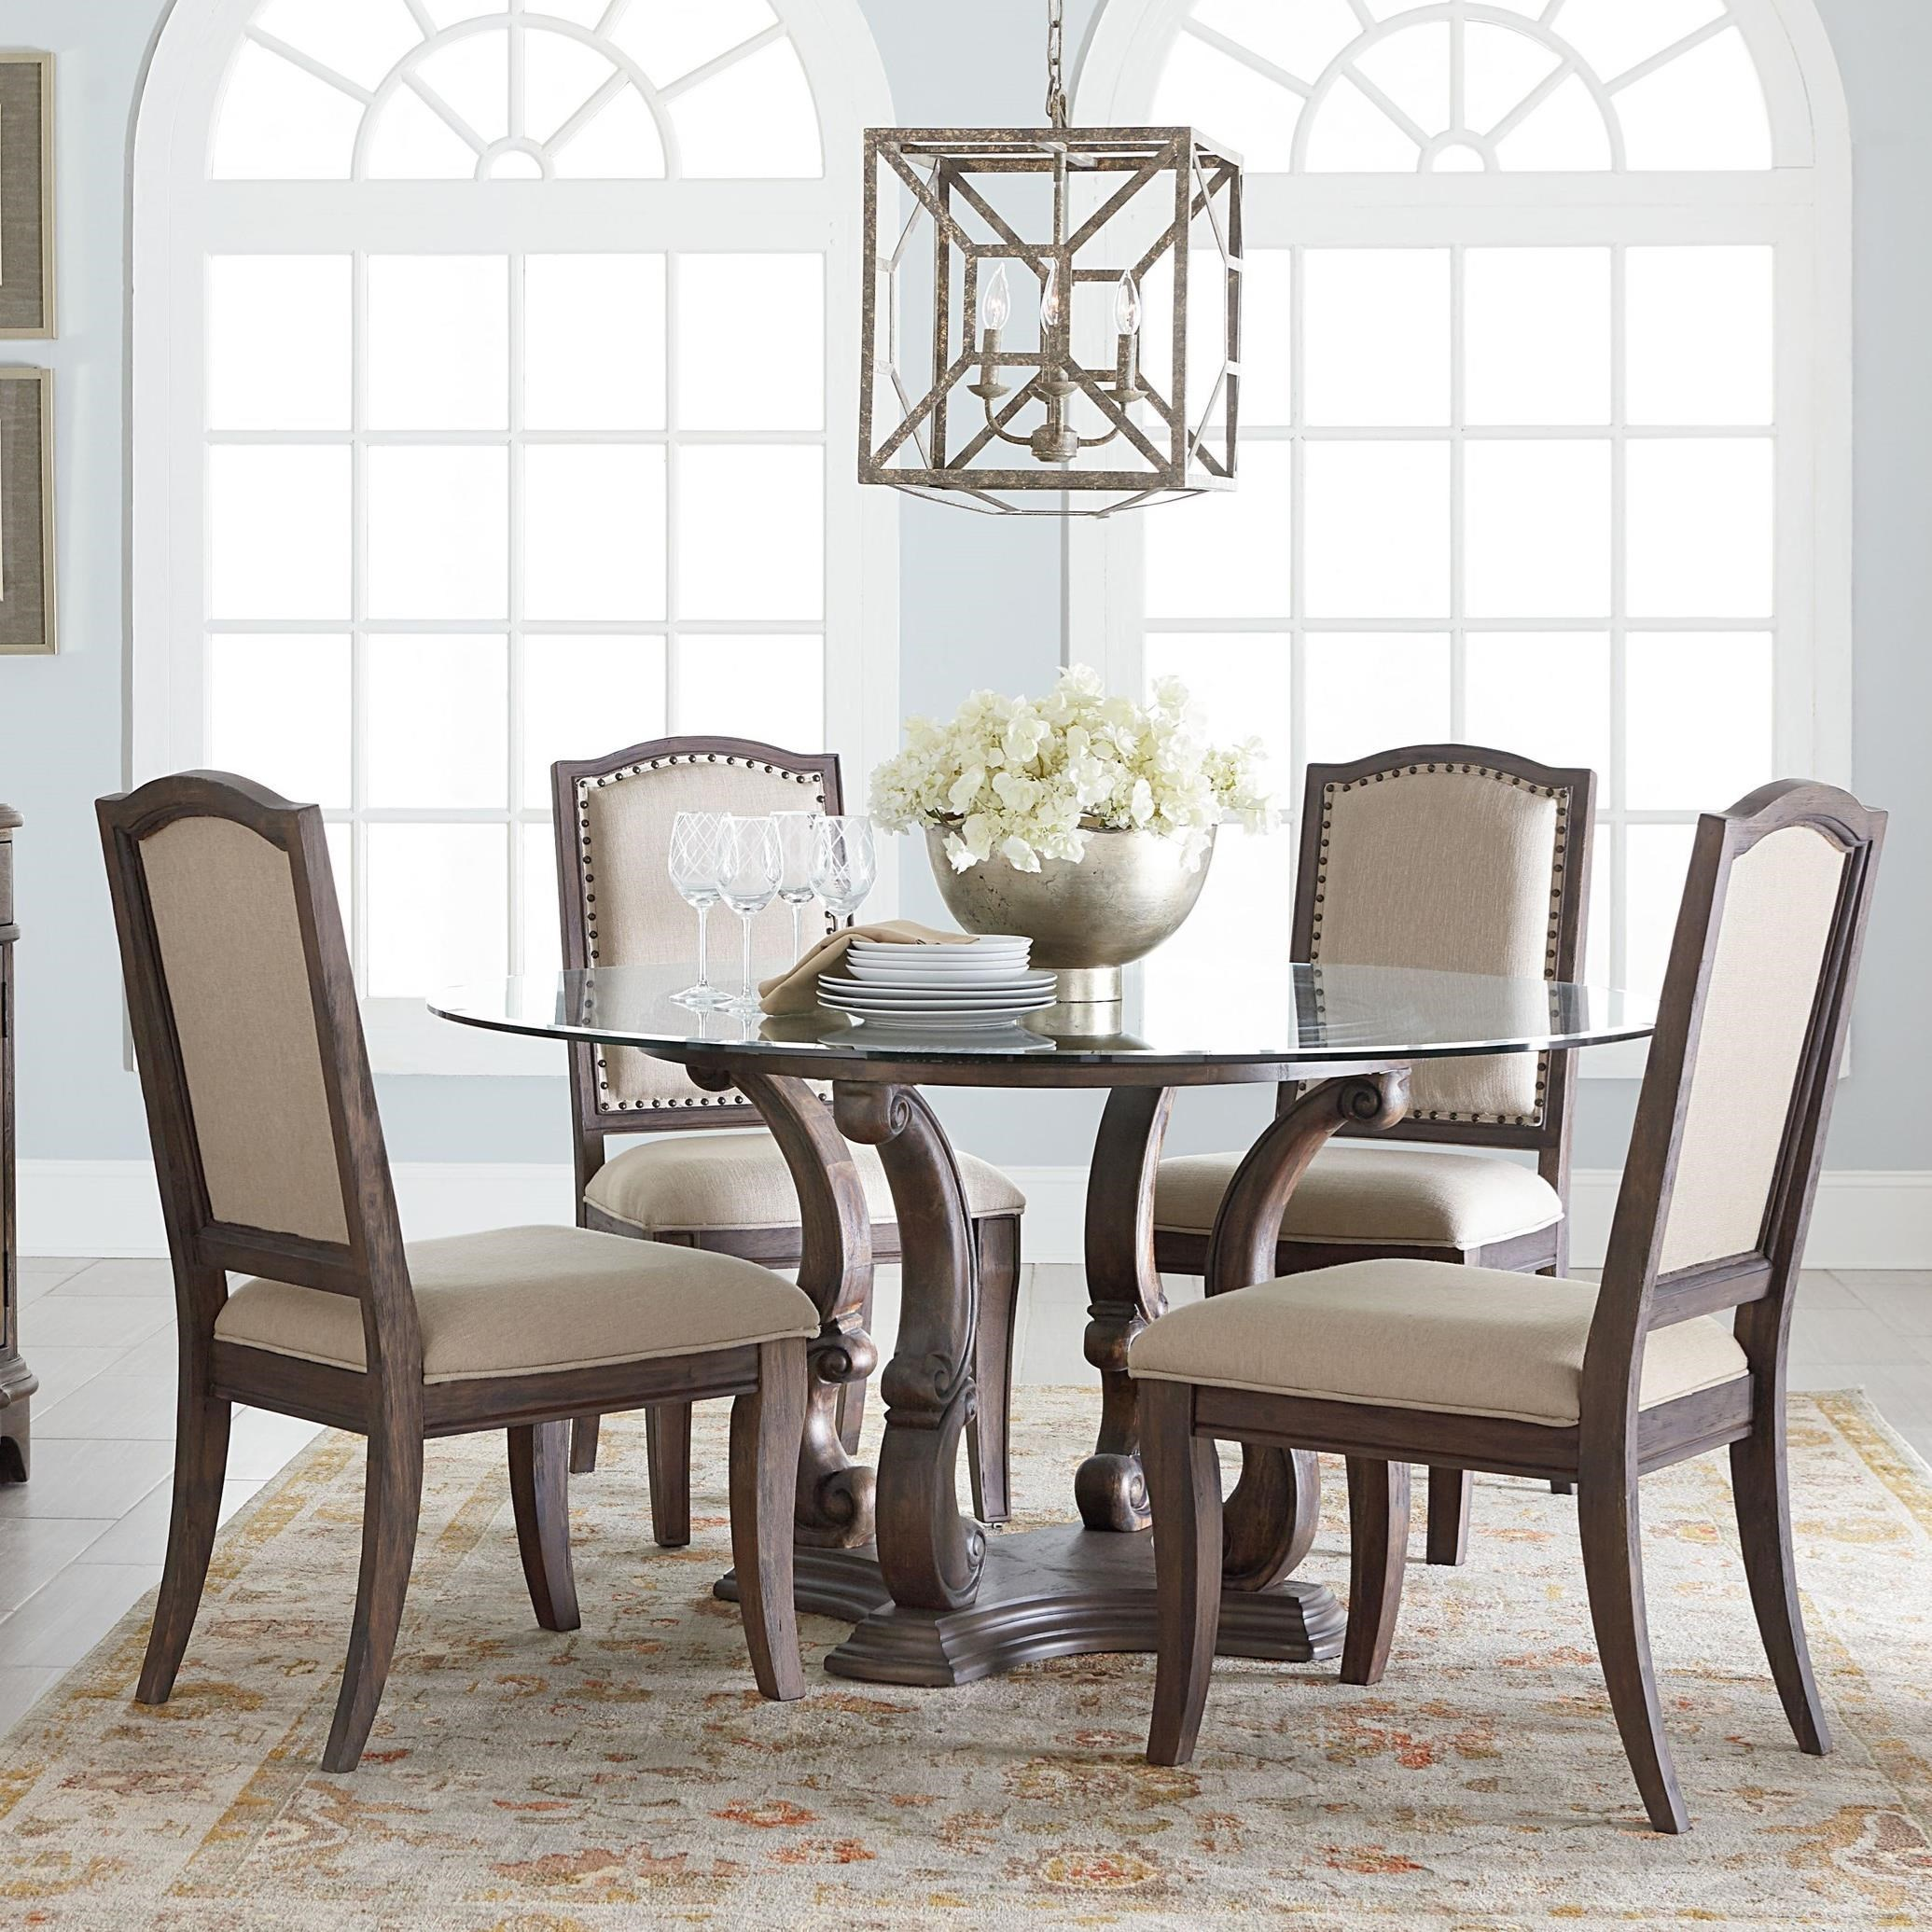 Standard Furniture Parliament Round Table and Chair Set - Dunk ...